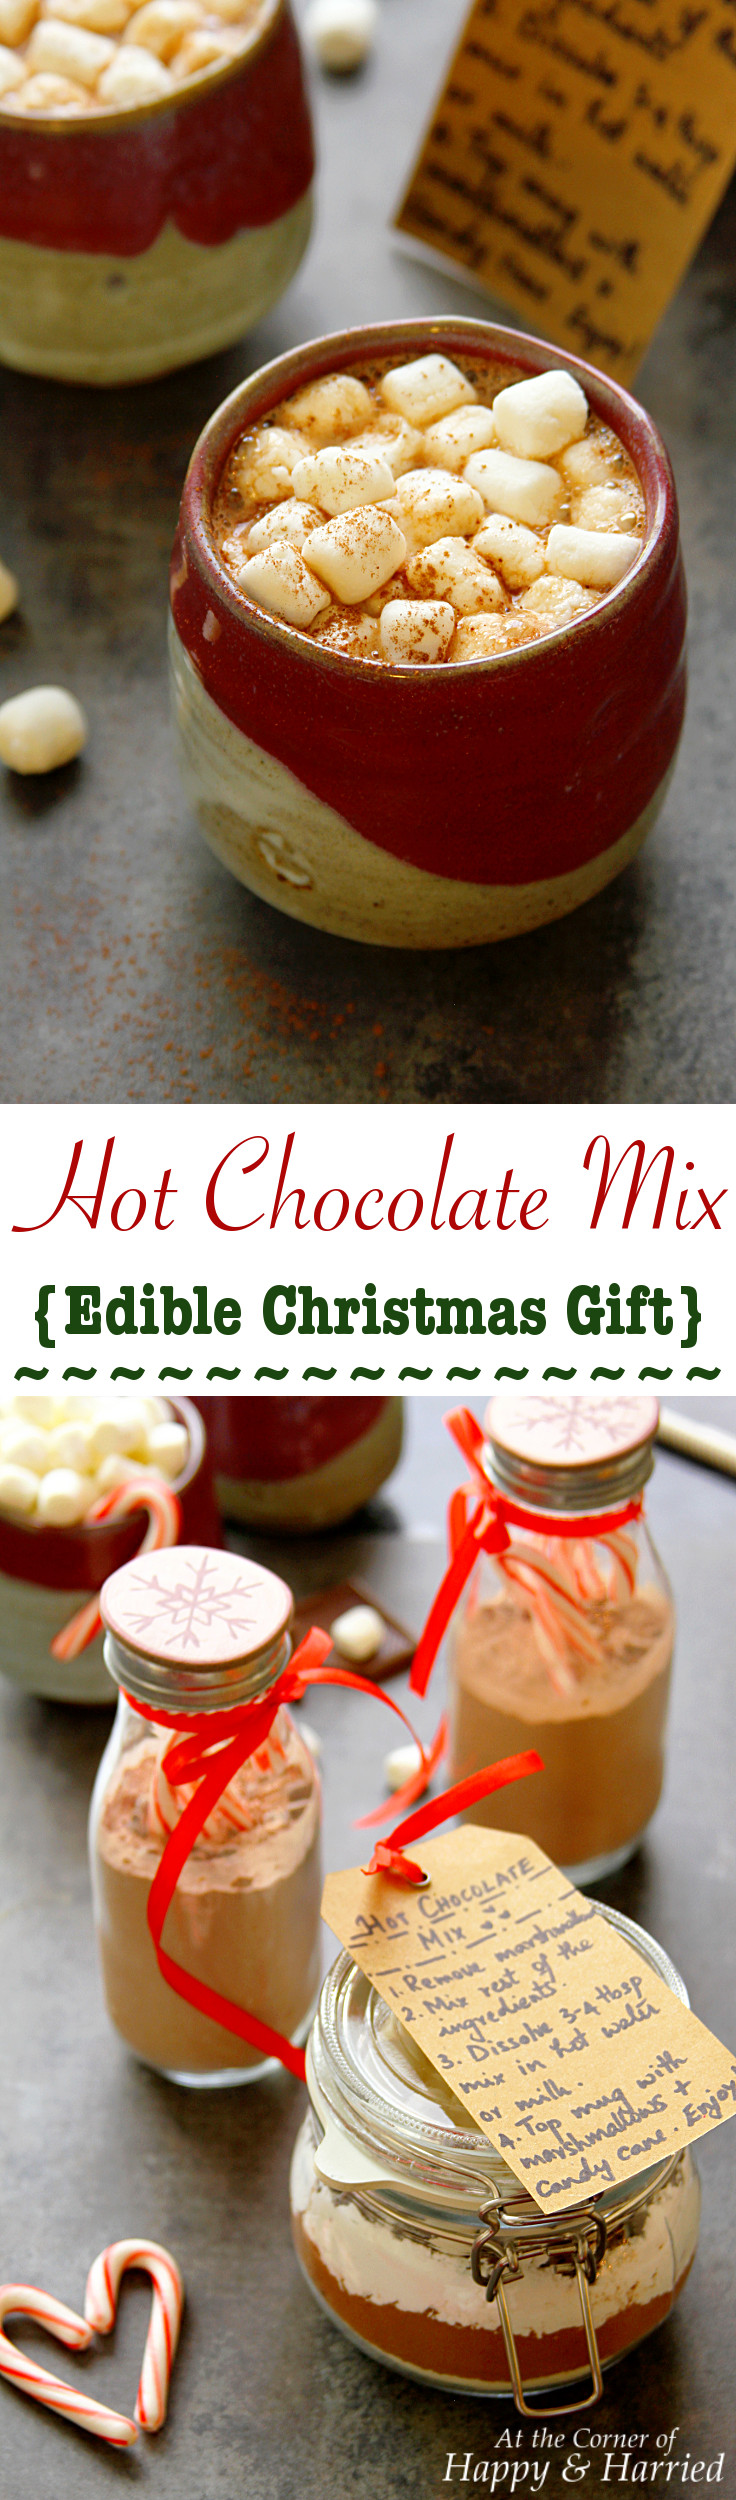 hot chocolate mix christmas edible gift